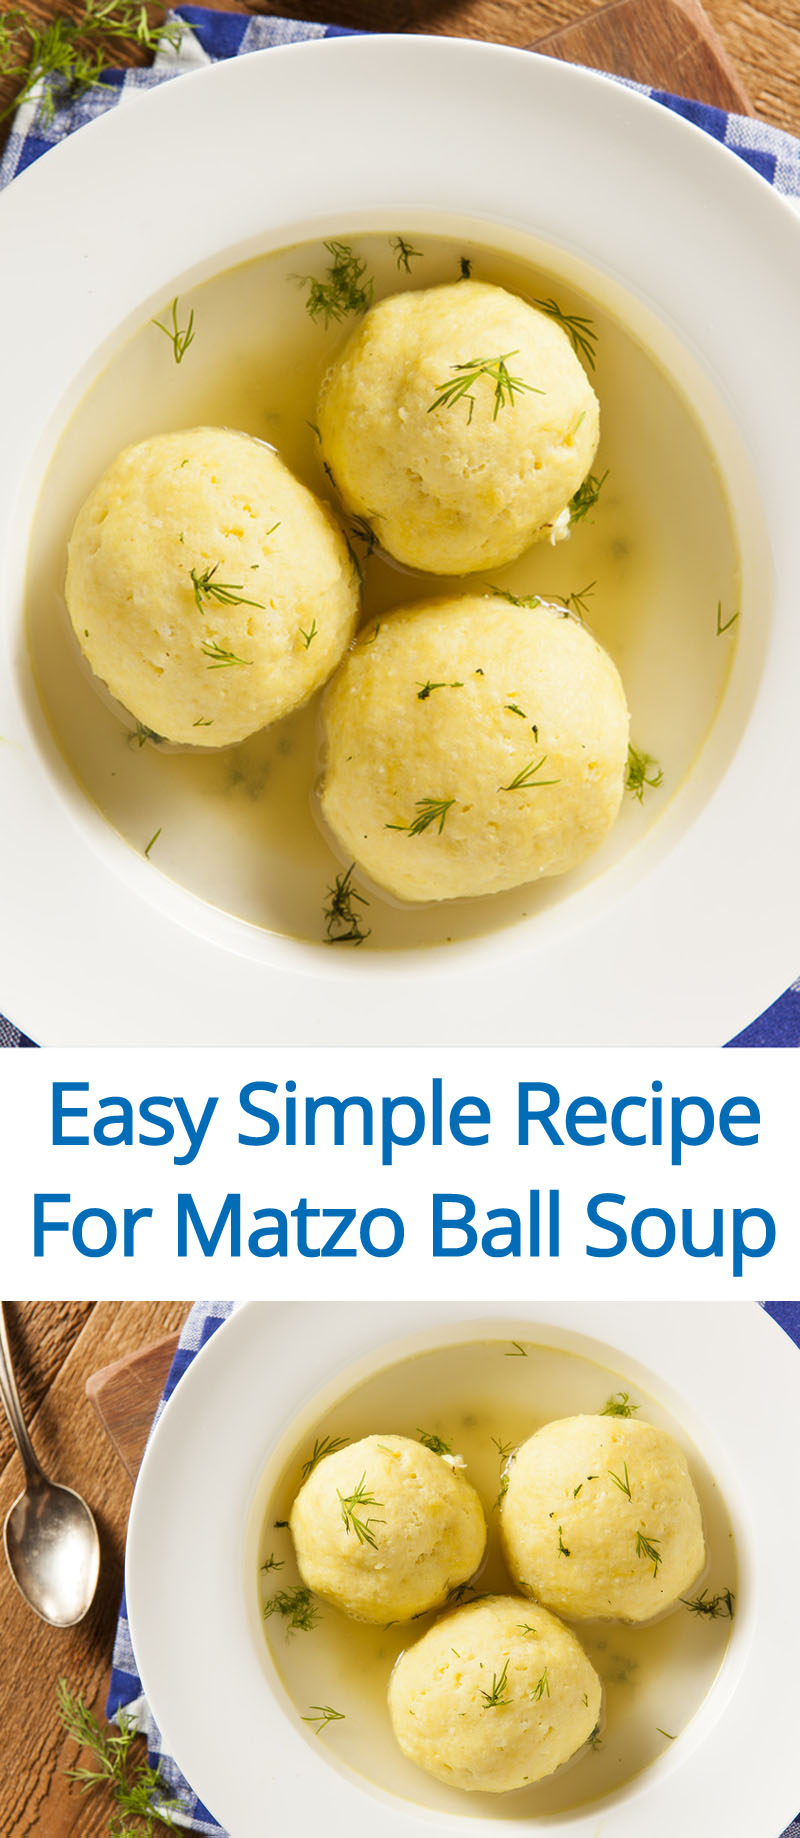 Easy Matzo Ball Soup Recipe - perfect for beginners!